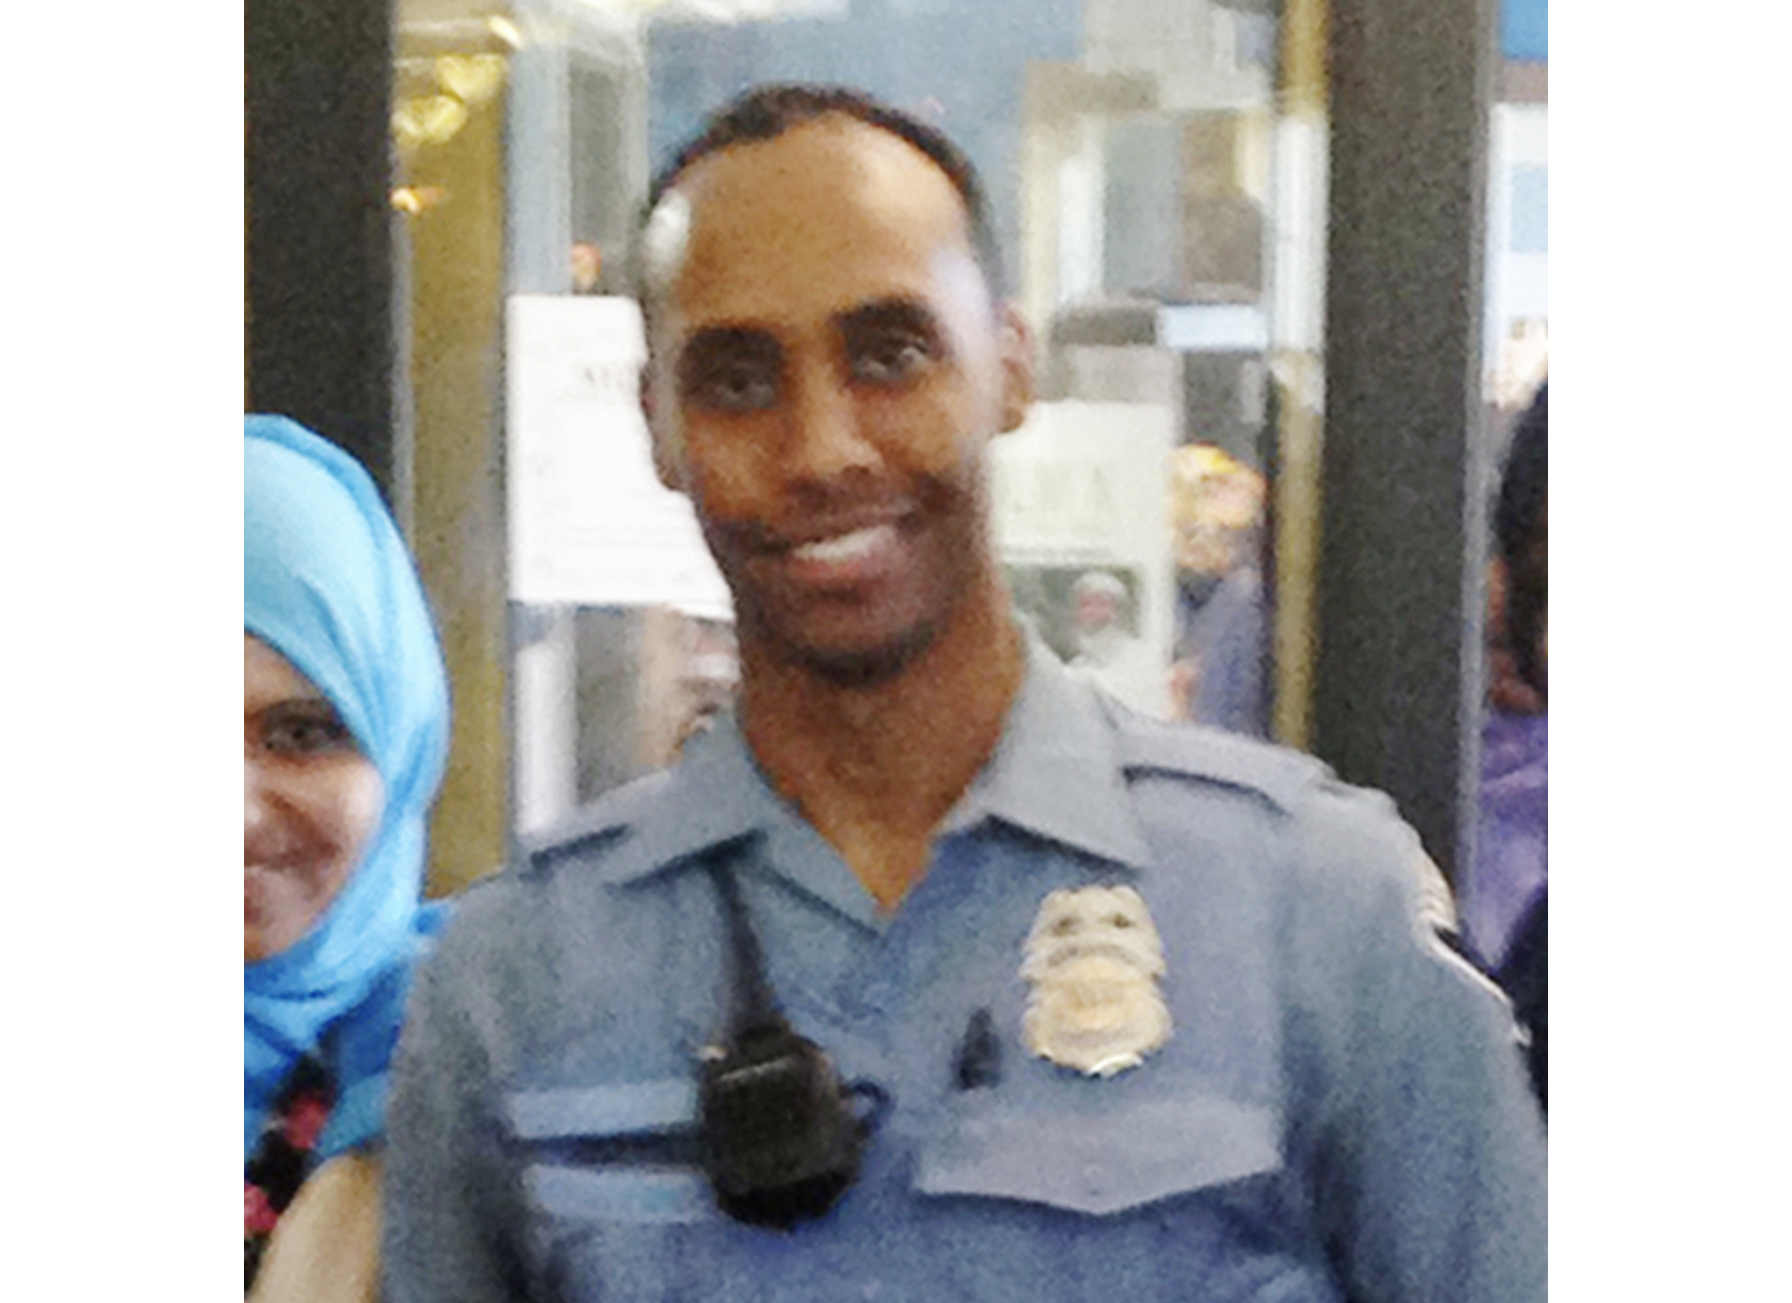 Justine Damond Shooting: Minneapolis Police Officer Mohamed Noor Charged With Murder